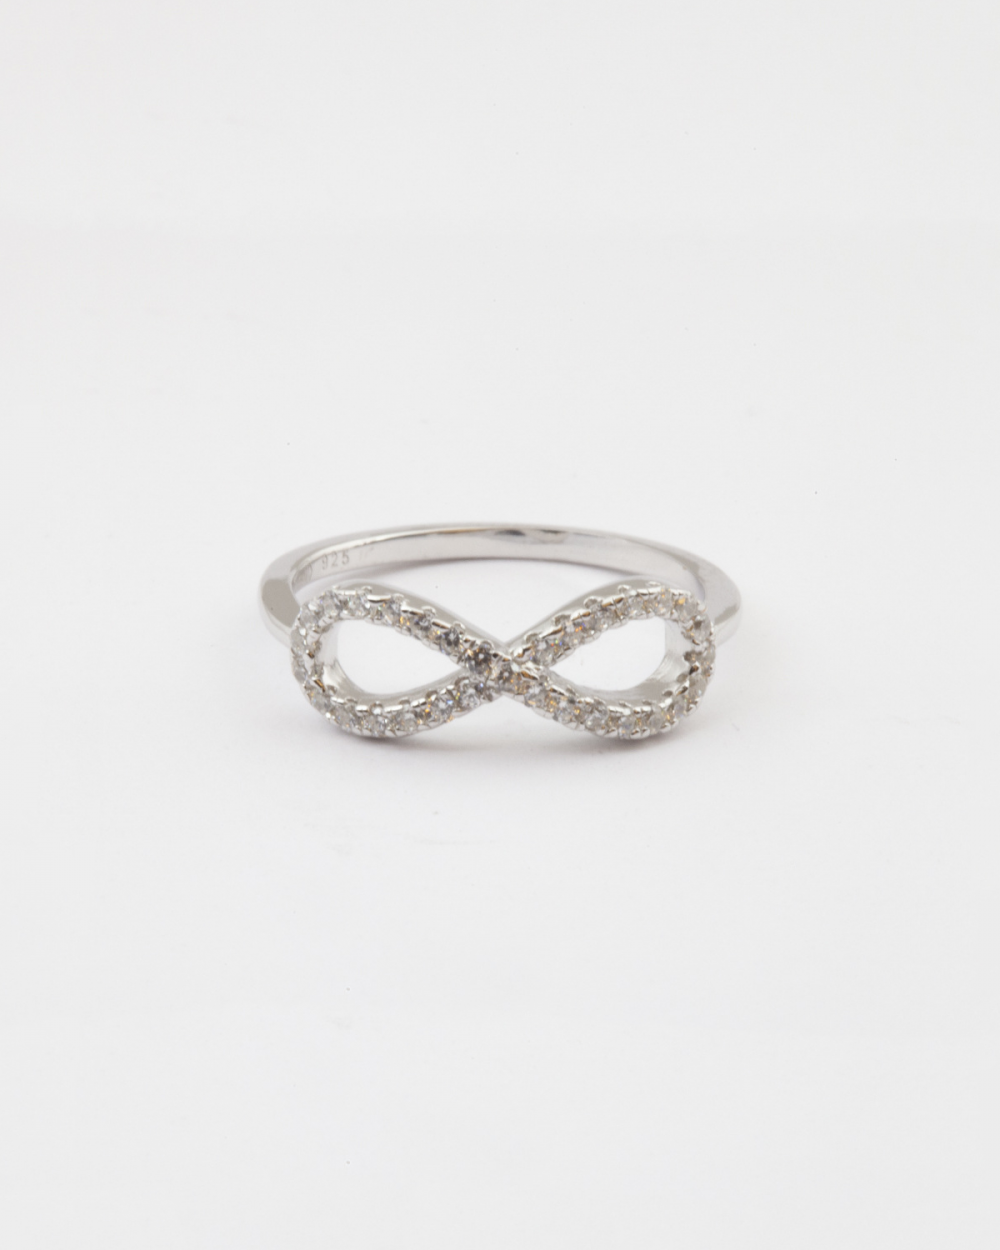 Archive Sale CUBIC ZIRCONIA SMALL INFINITY RING / RHODIUM FINISH NOVE25